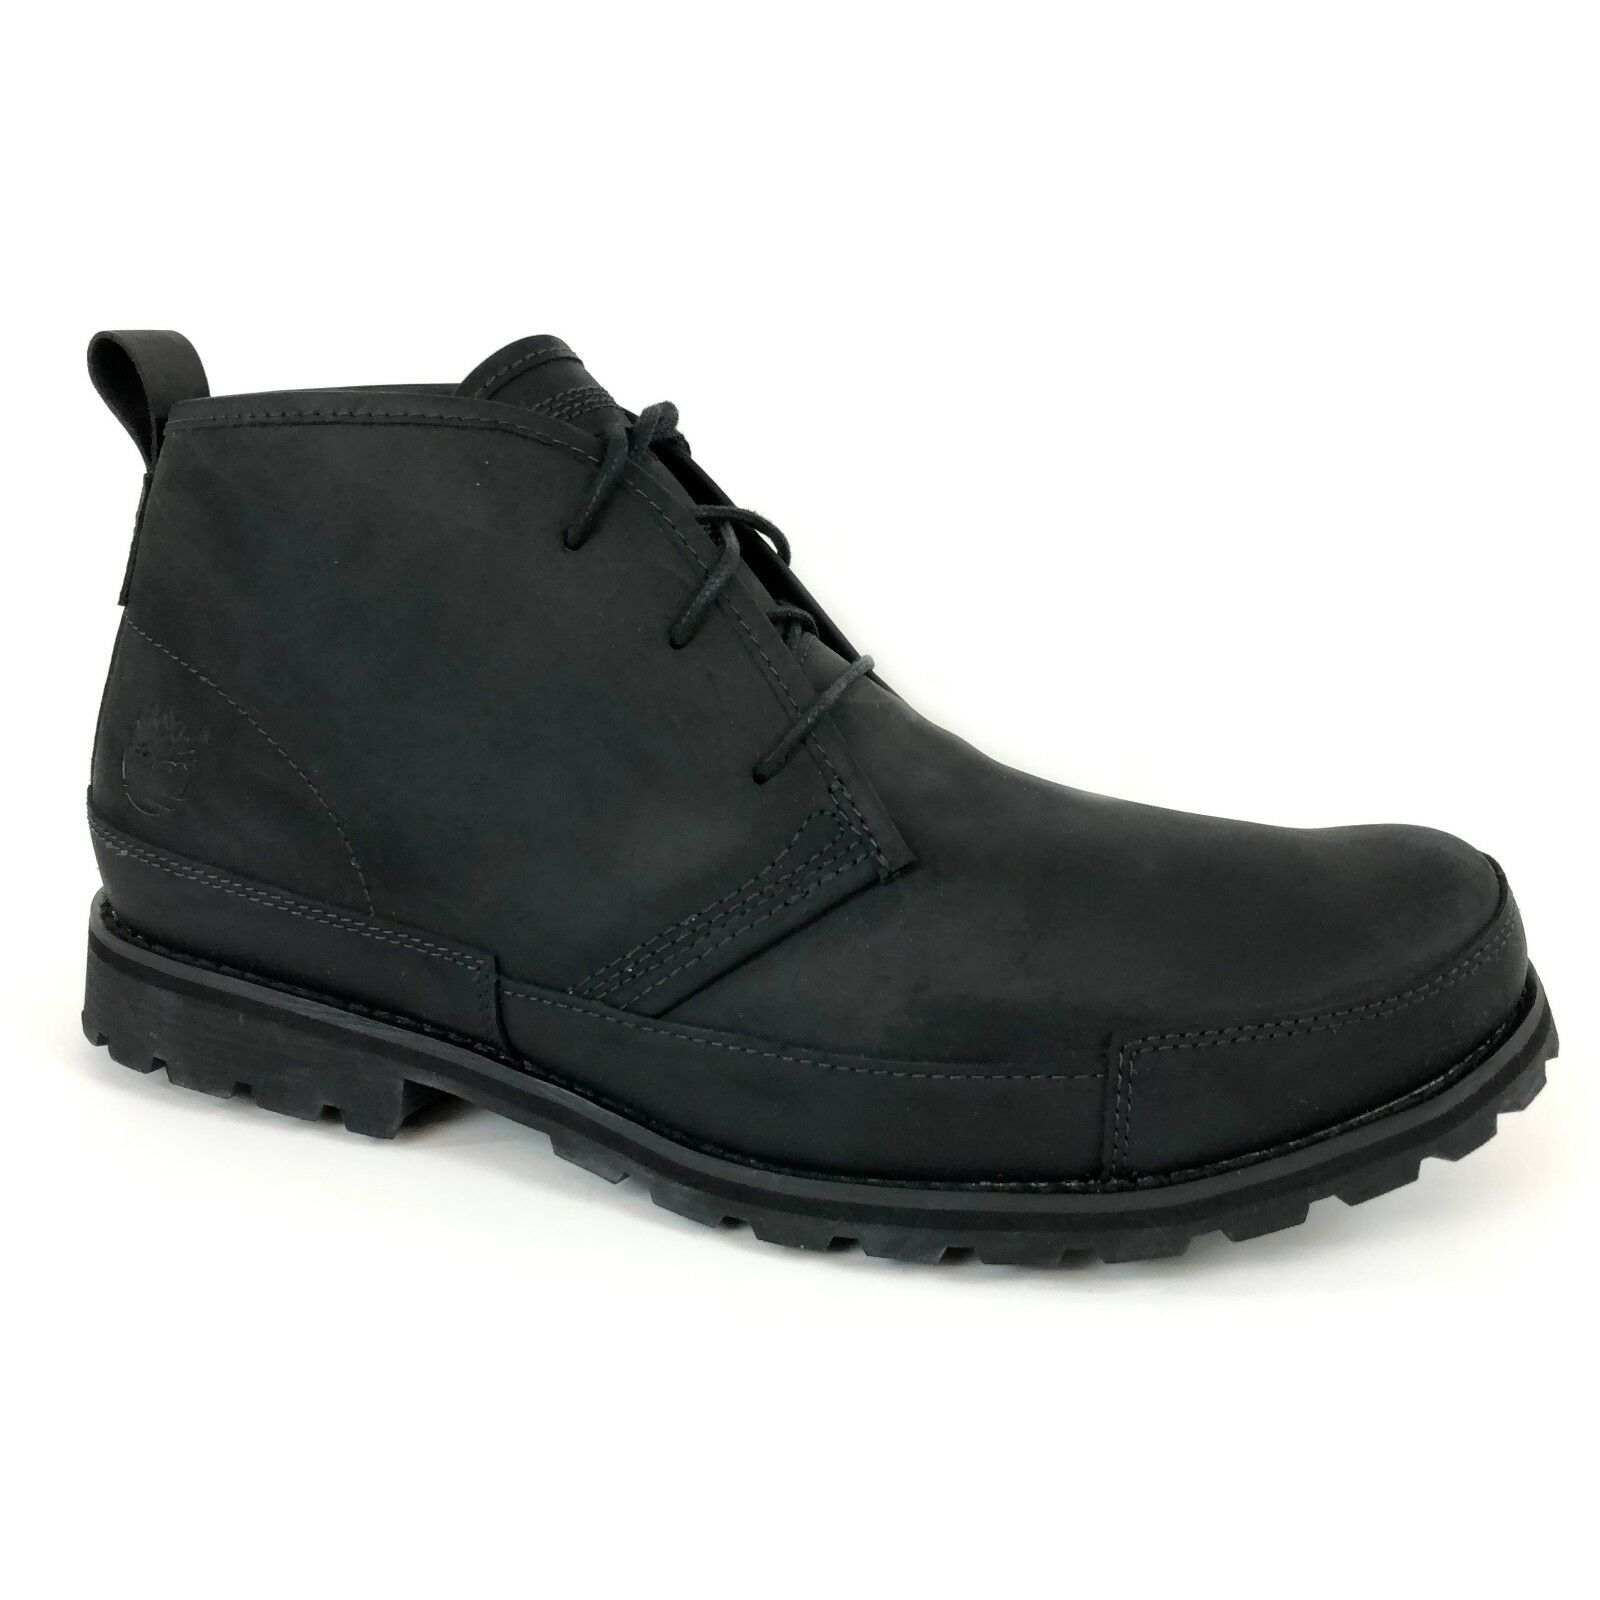 Timberland Men's Earthkeepers BBurg PTC Black Leather Chelsae Boots 84586 Sz 12